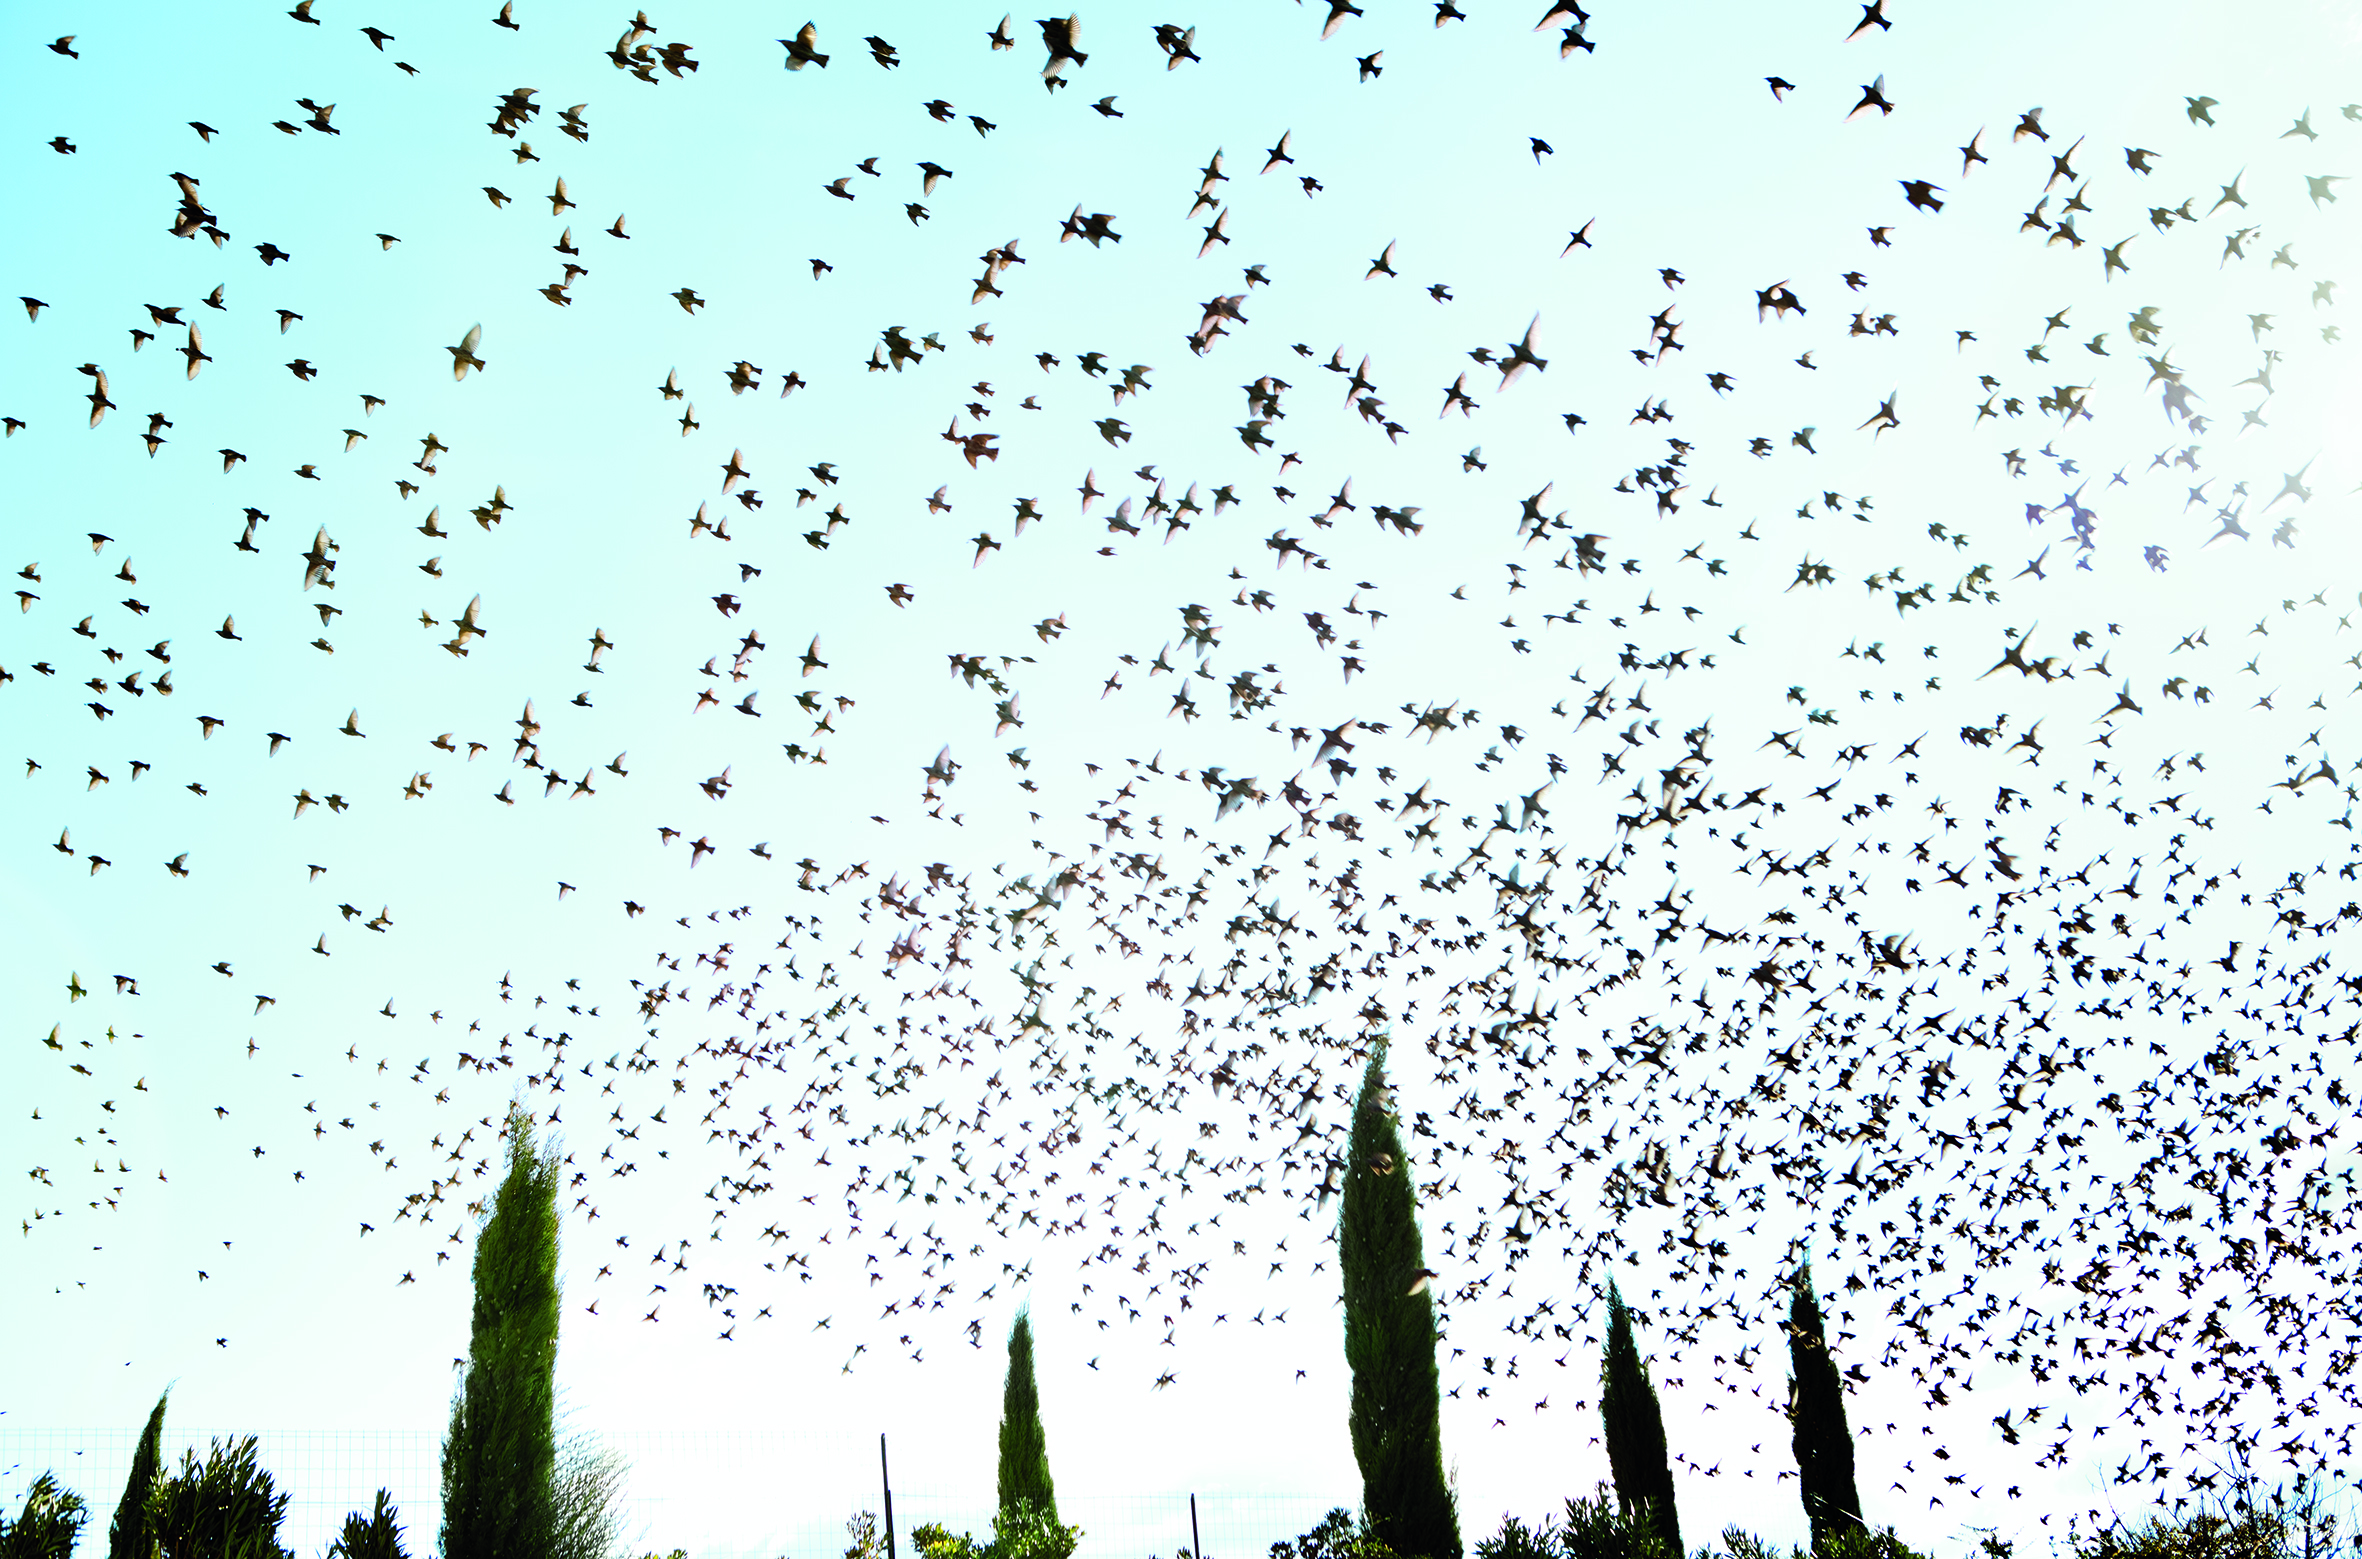 Devino-vent  is a Provencal word that means a wind diviner. These forecasters were dead birds, usually martins, that had been dried and hung on strings in the kitchens of farmhouses. © Rachel Cobb. Courtesy of Damiani.